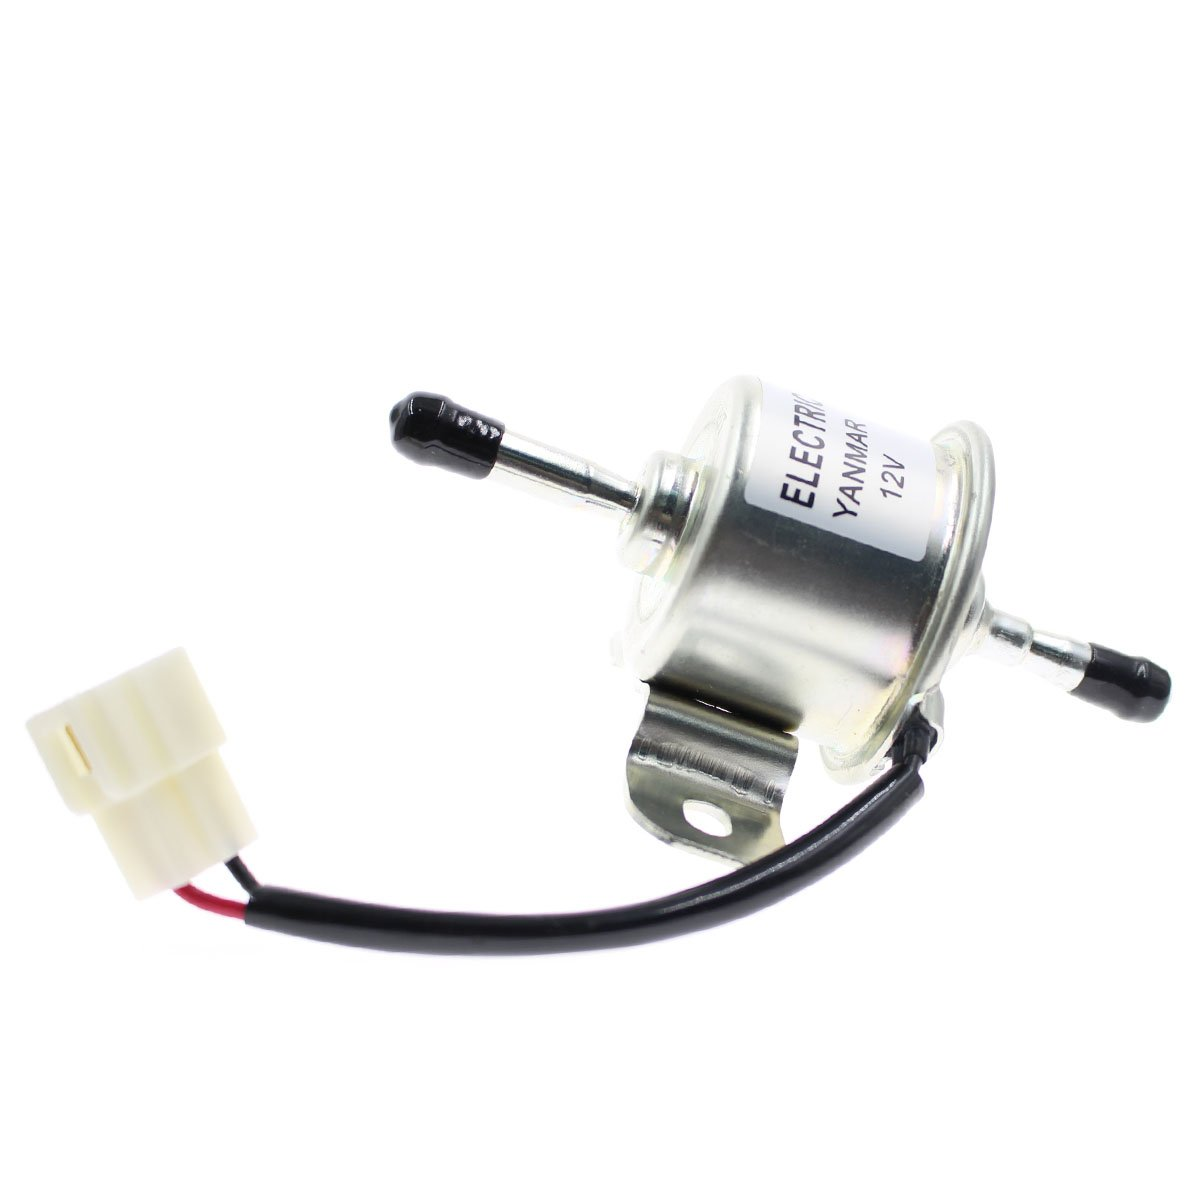 GooDeal Electric Fuel Pump for John Deere F1420 F912 F932 F911 777 322 6X4 4x2 Gator HPX